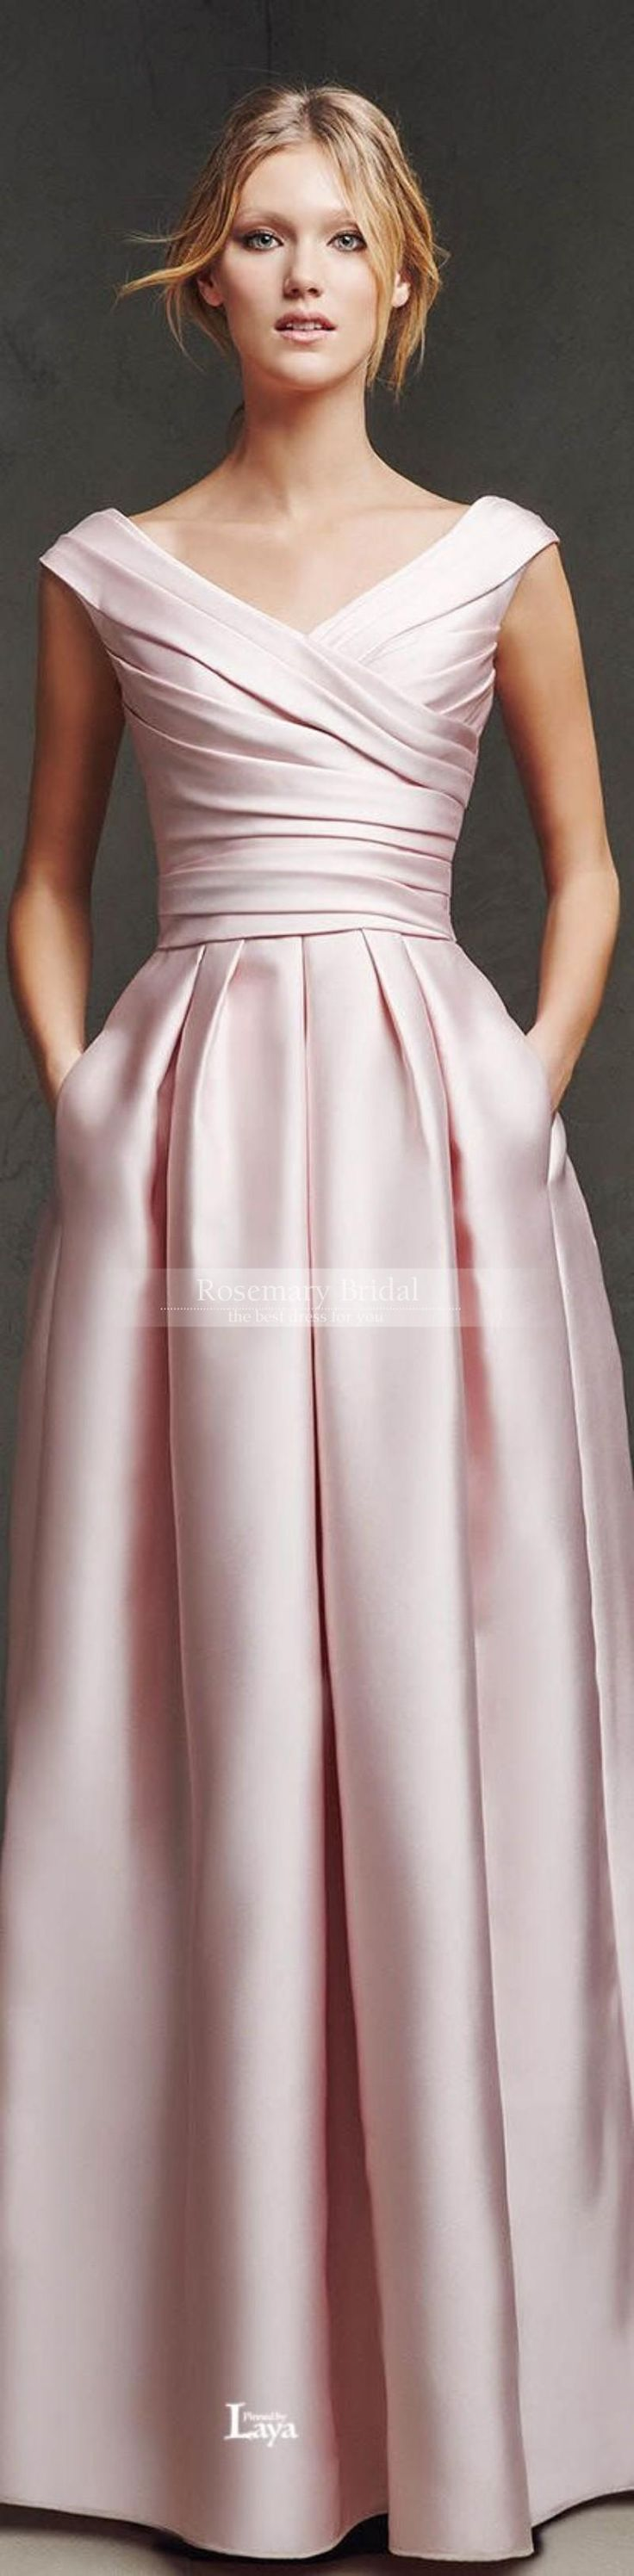 25 cute plus size bridesmaid ideas on pinterest grooms mother 25 cute plus size bridesmaid ideas on pinterest grooms mother dresses mother of the bride dresses plus size and plus size bridesmaids dresses ombrellifo Image collections